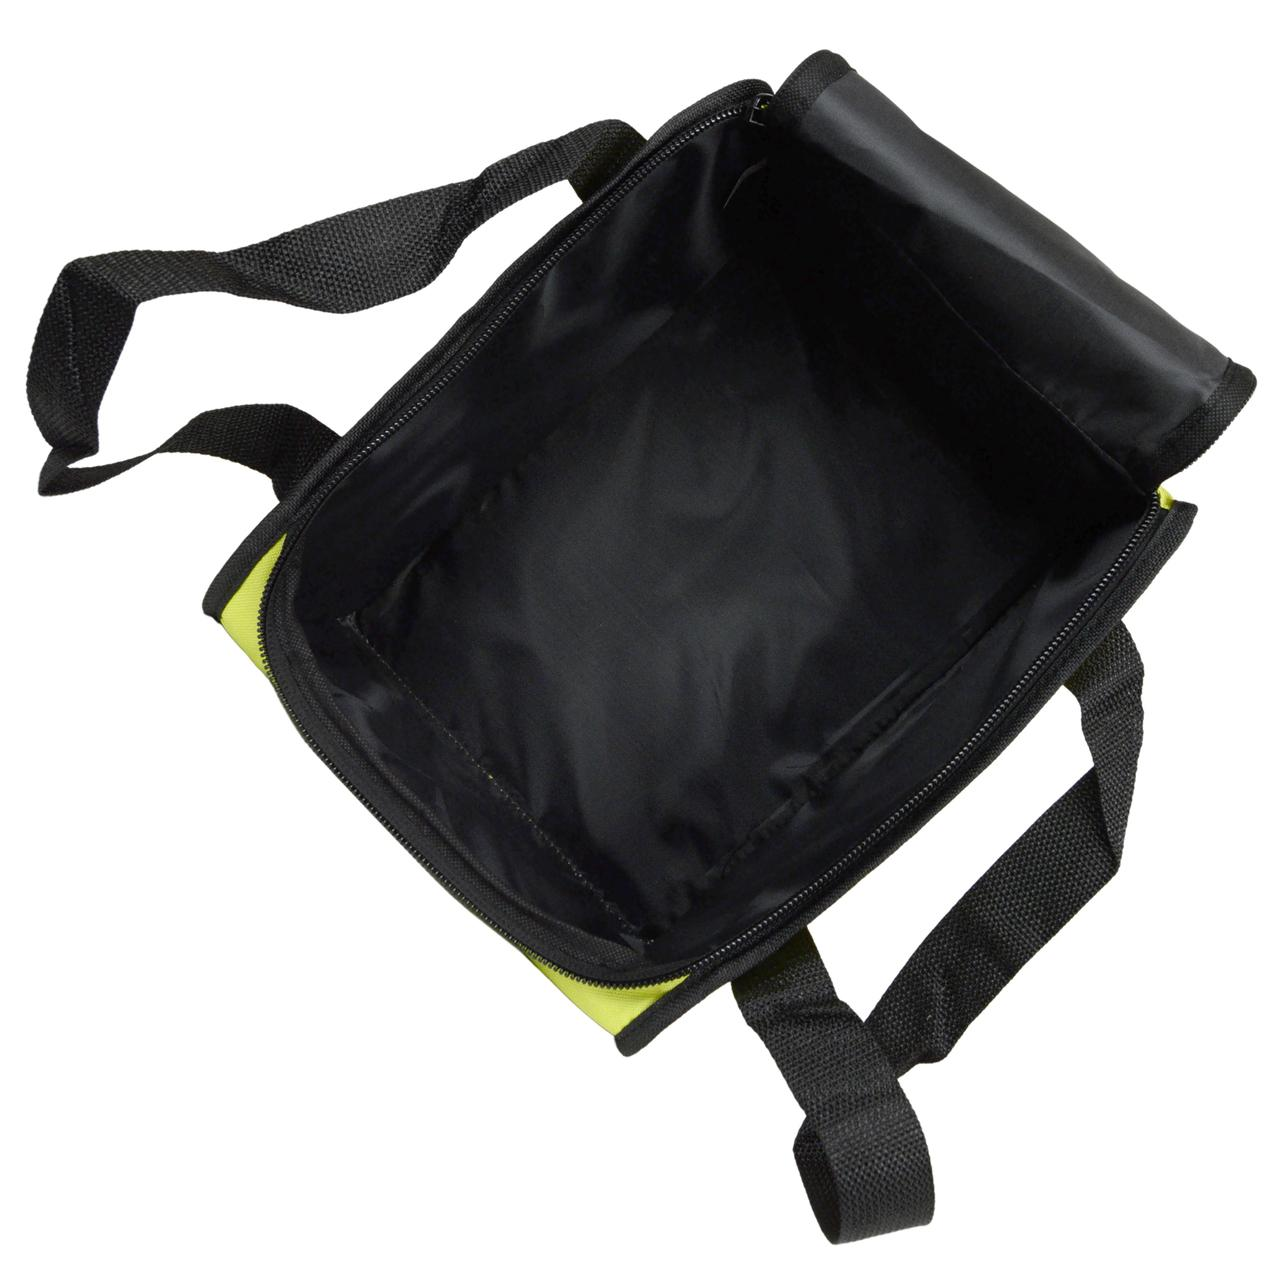 NEW BAG / DRILL BAG ONLY!